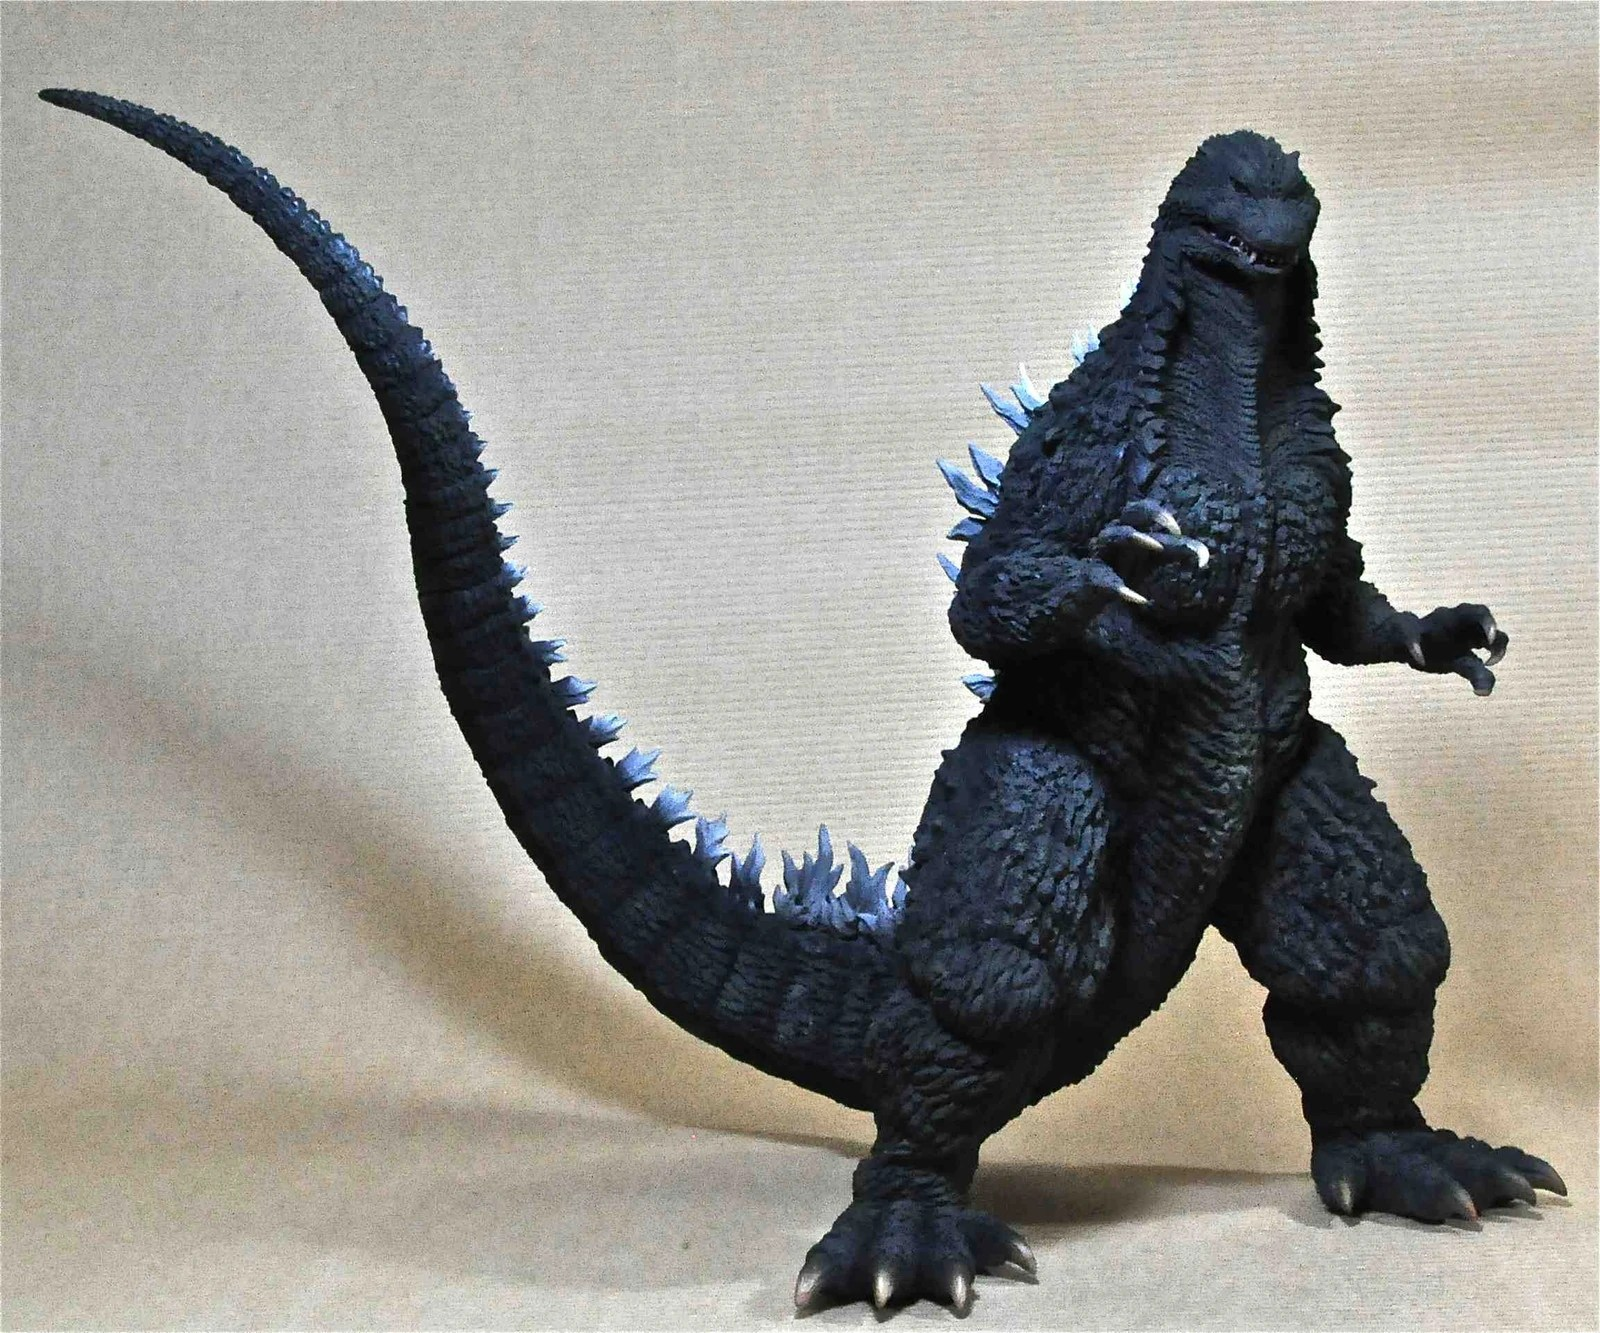 20 Acacius Godzilla Pictures And Ideas On Stem Education Caucus